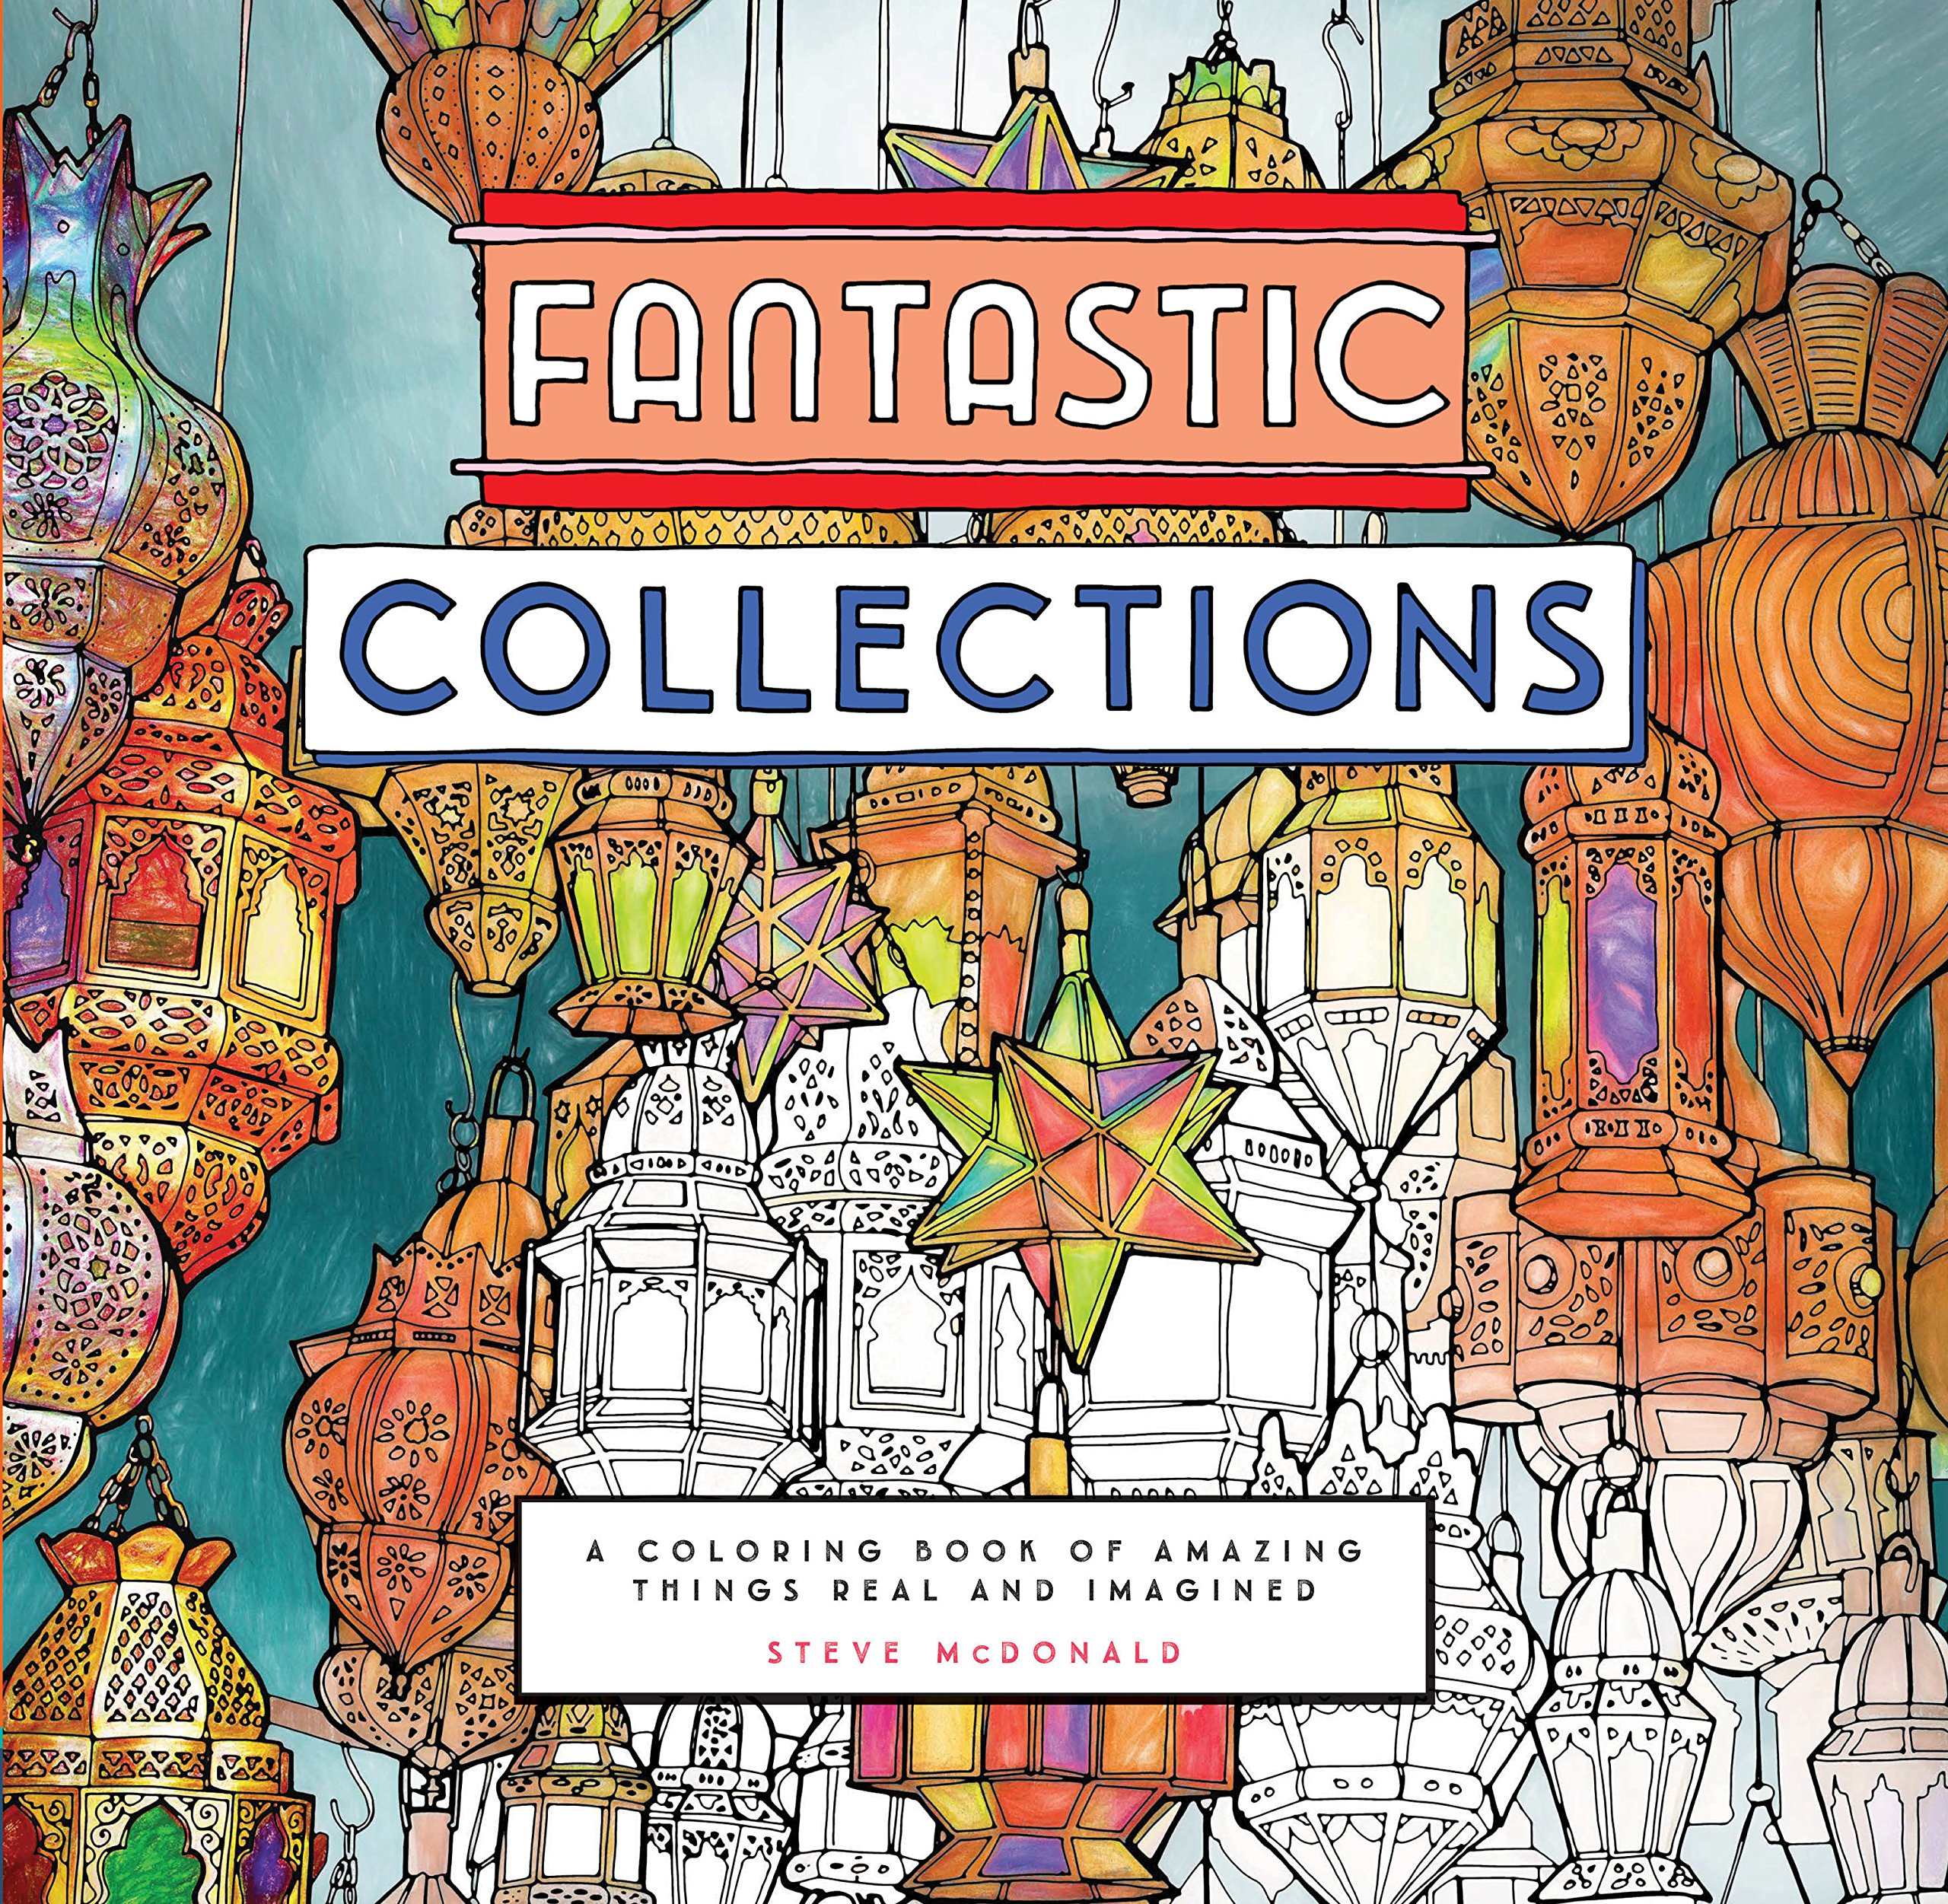 fantastic collections a coloring book of amazing things real and imagined fantastic cities amazonde steve mcdonald fremdsprachige bcher